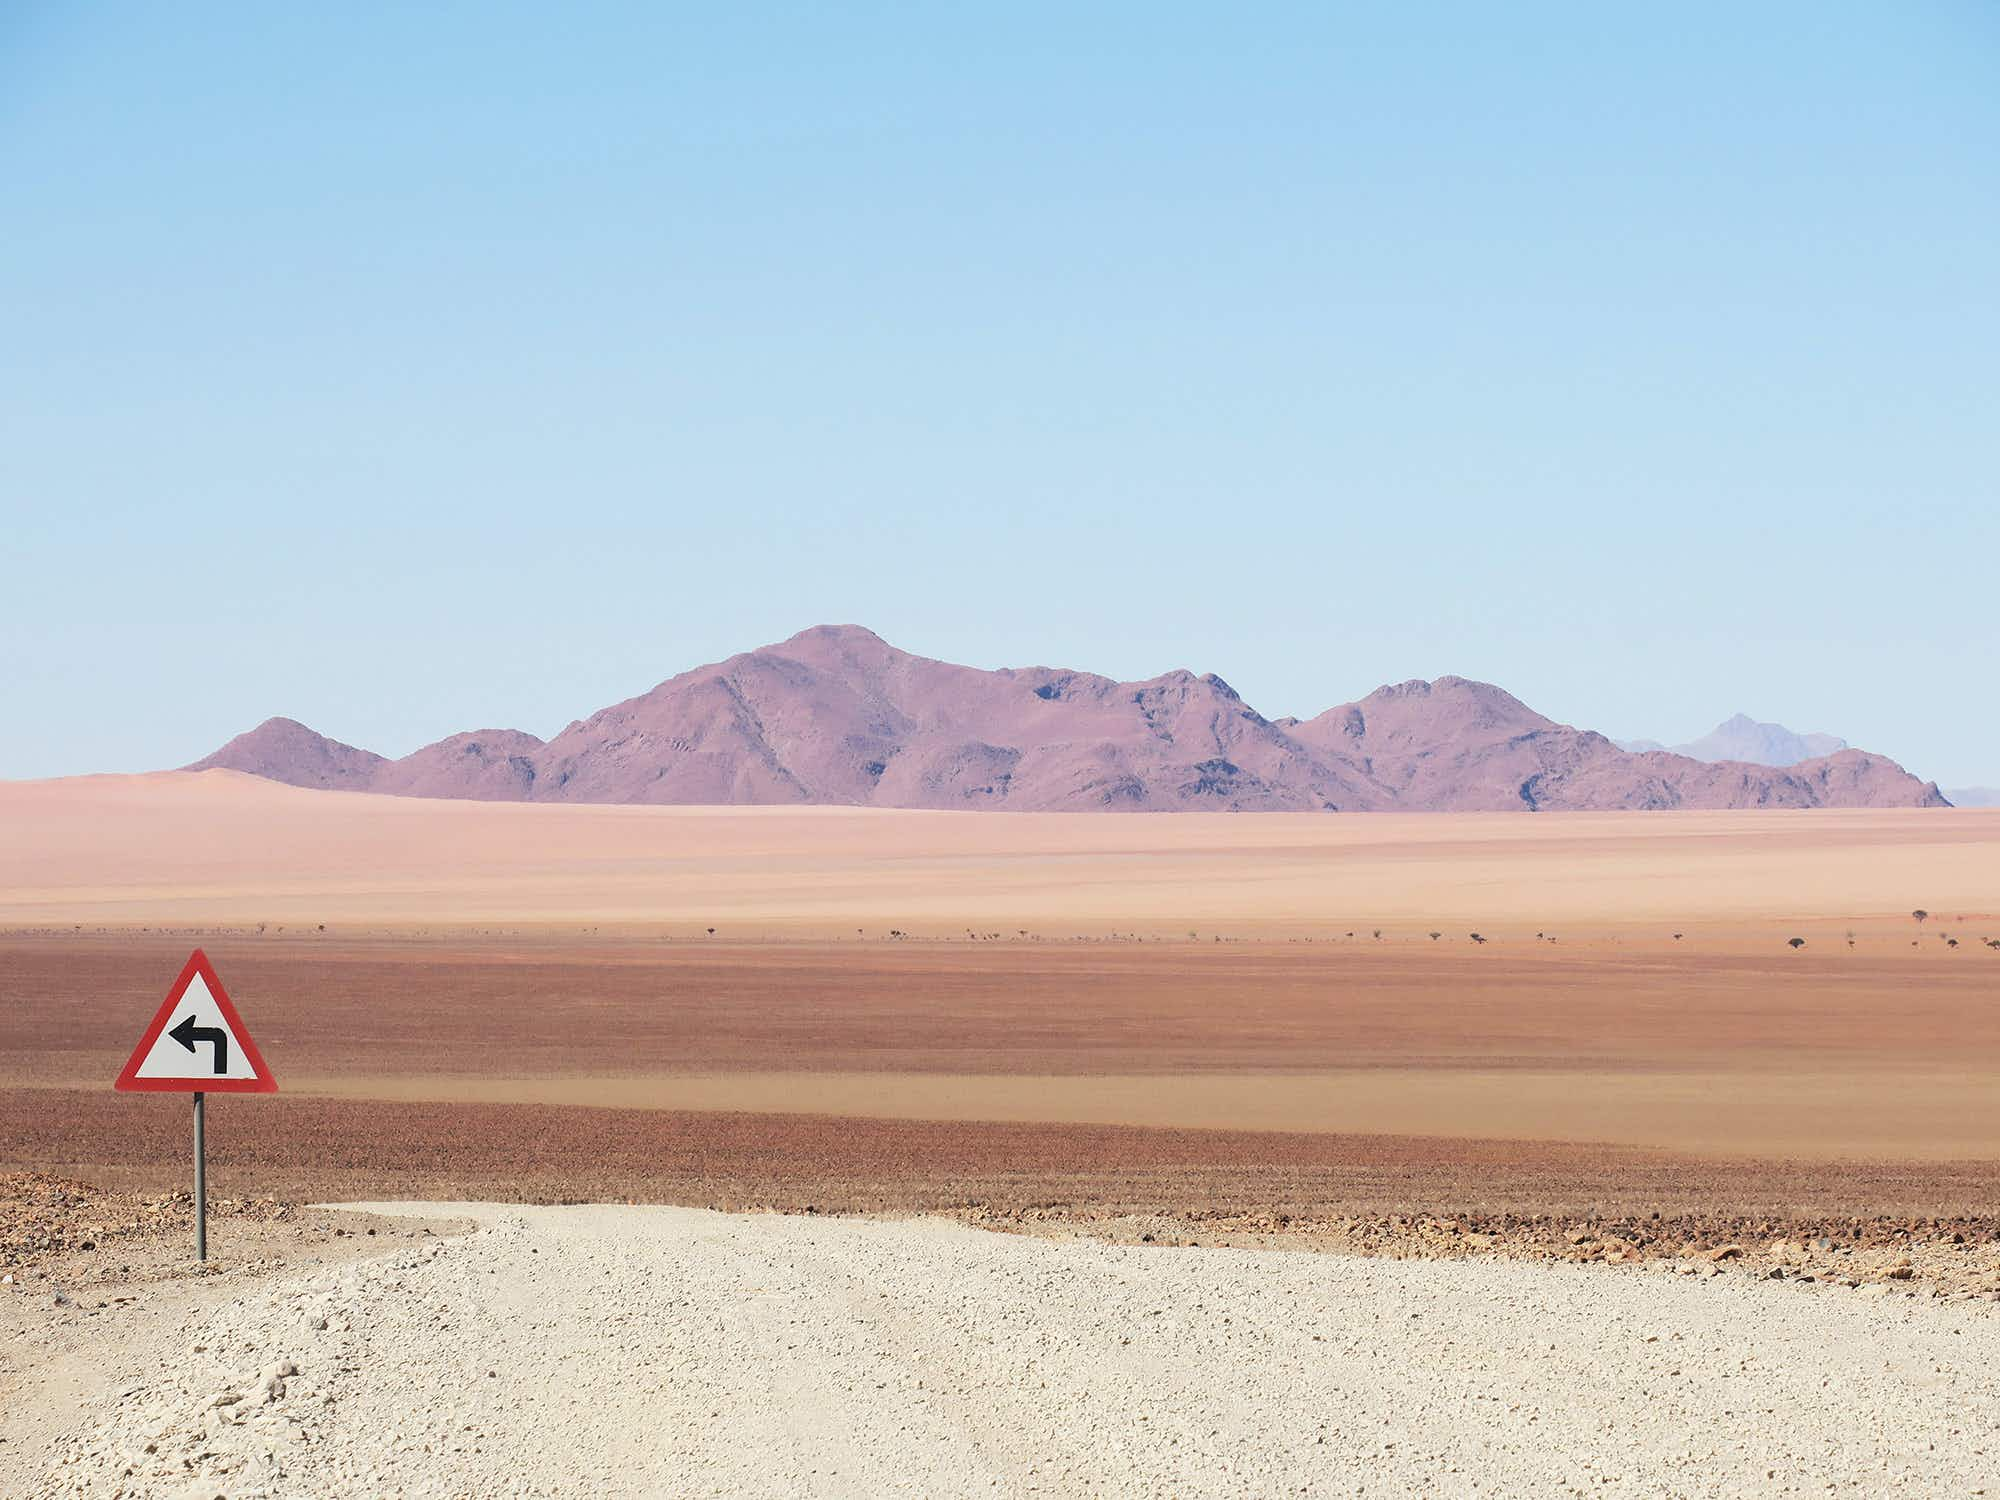 Check out these stunning shots of the Namibian desert's 'lonely signposts'